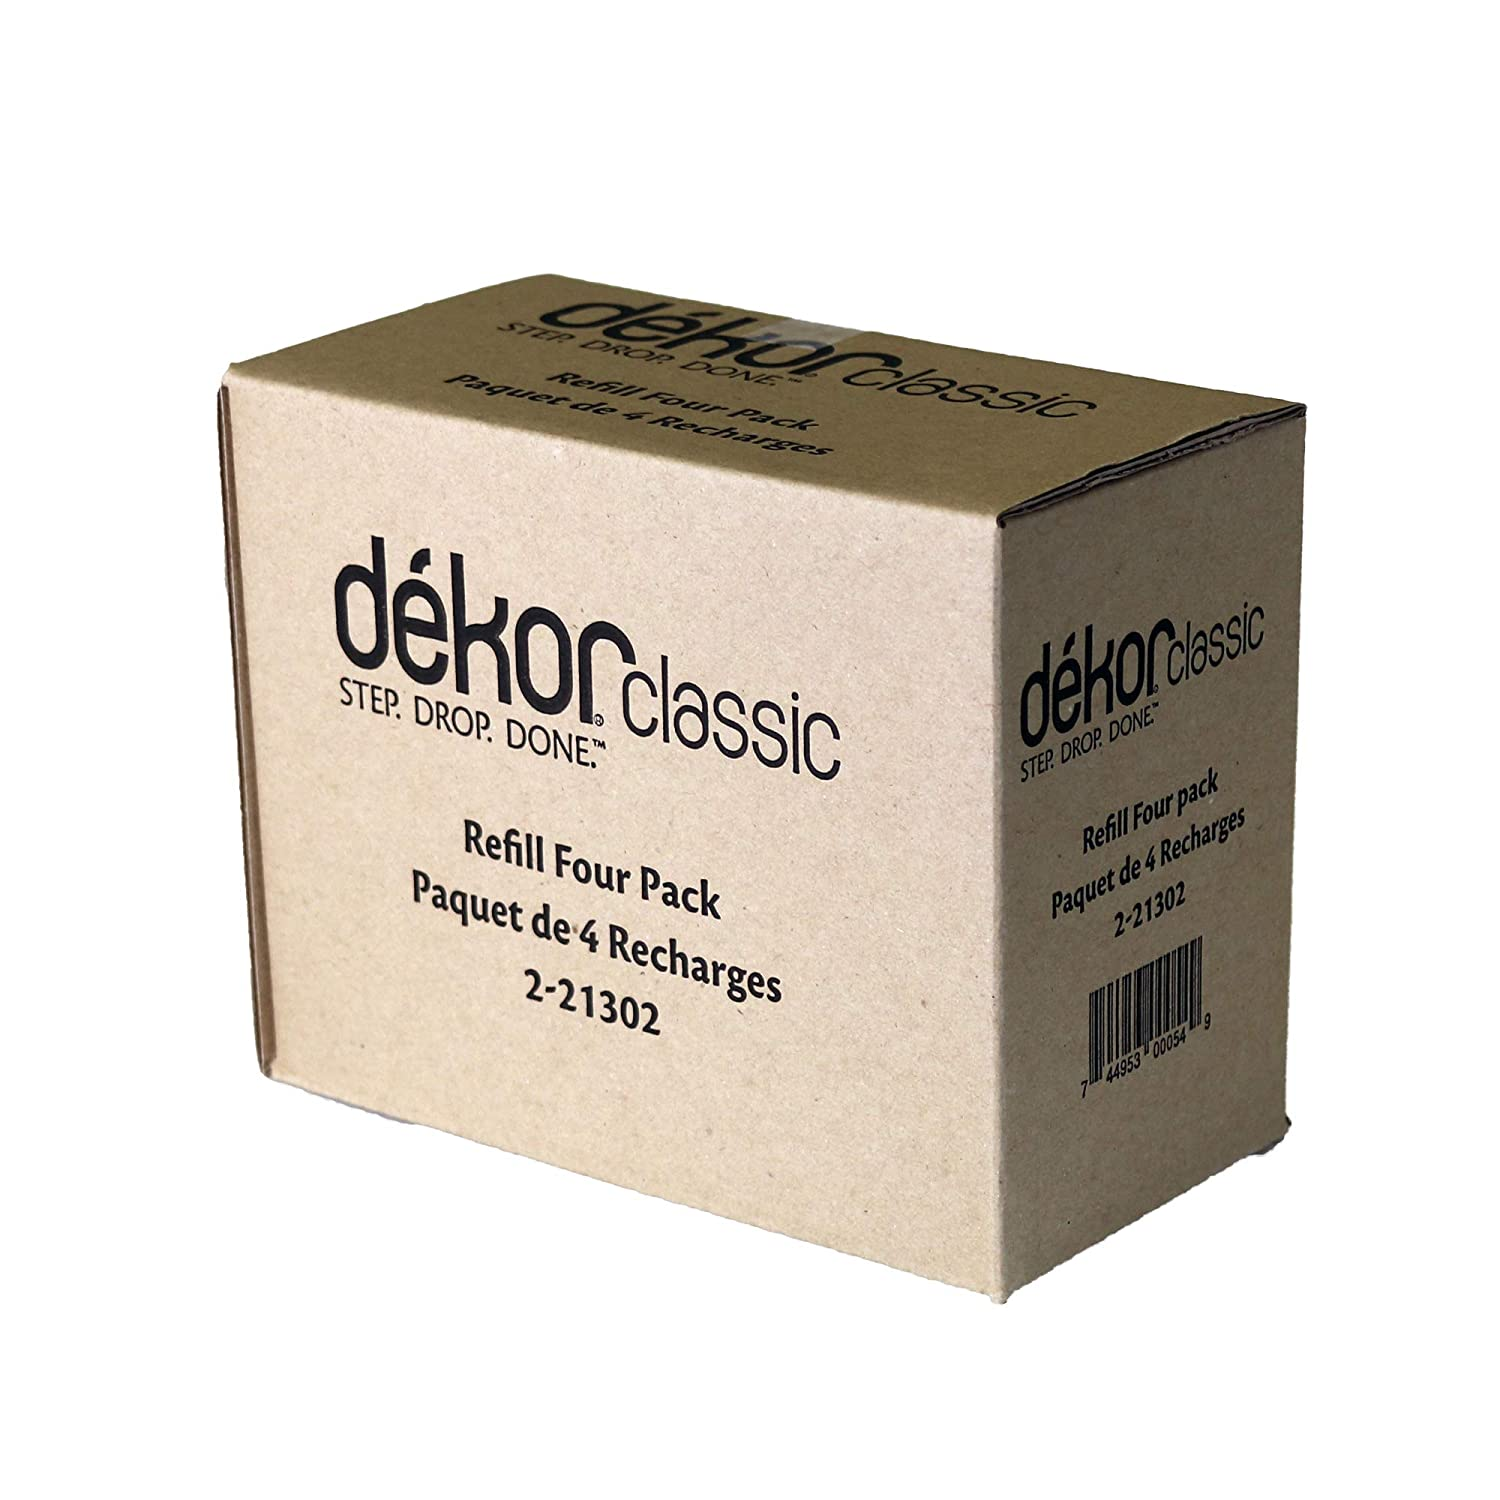 Dekor Classic Diaper Pail Refills | Most Economical Refill System | Quick & Easy to Replace | No Preset Bag Size – Use Only What You Need | Exclusive End-of-Liner Marking | Baby Powder Scent | 2 Count Diaper Dekor 2-21300